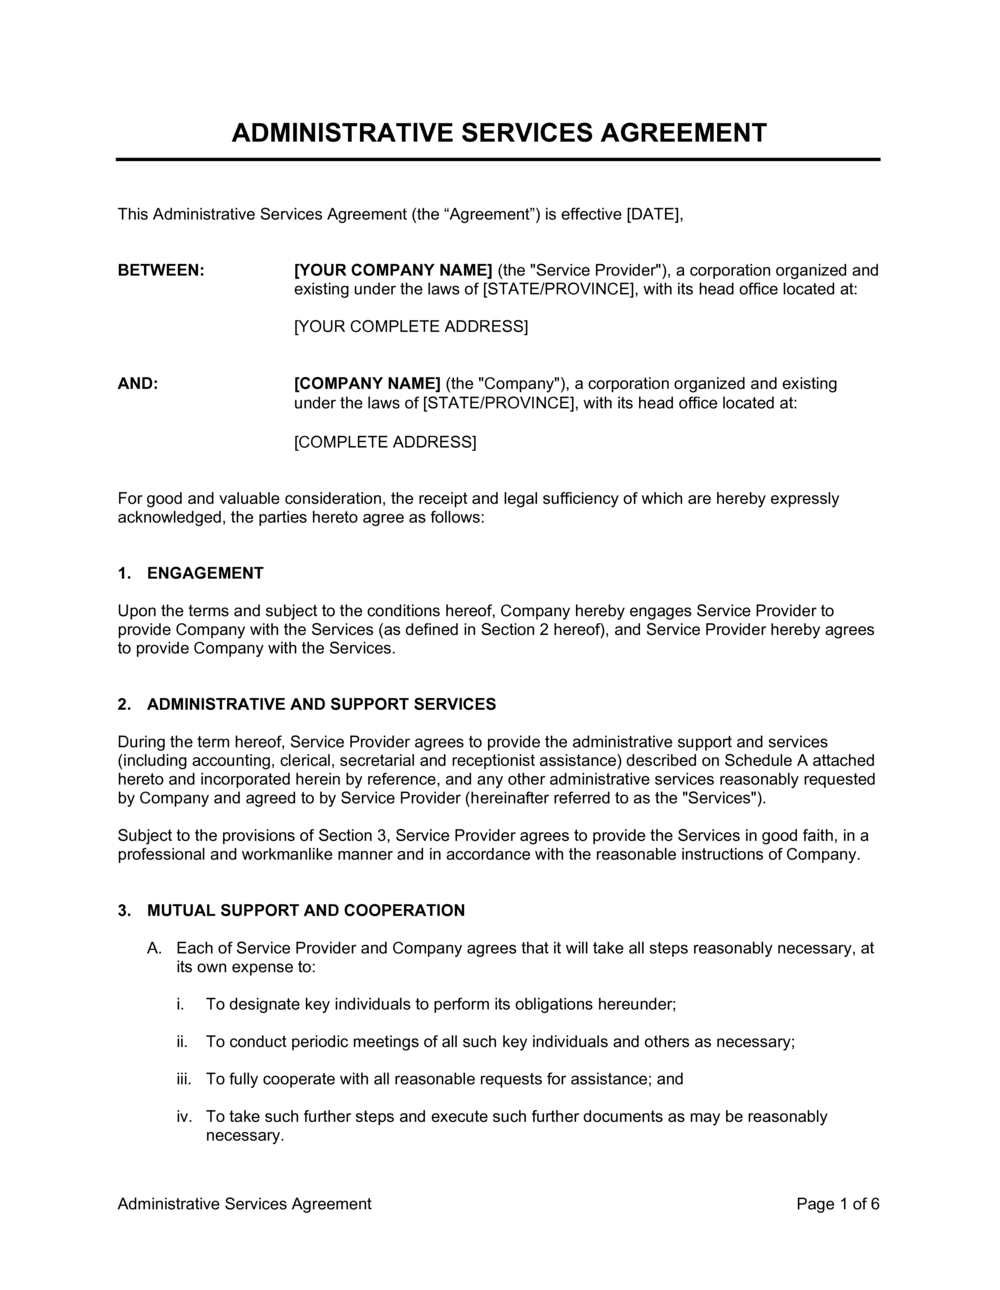 Business-in-a-Box's Administrative Services Agreement 3 Template